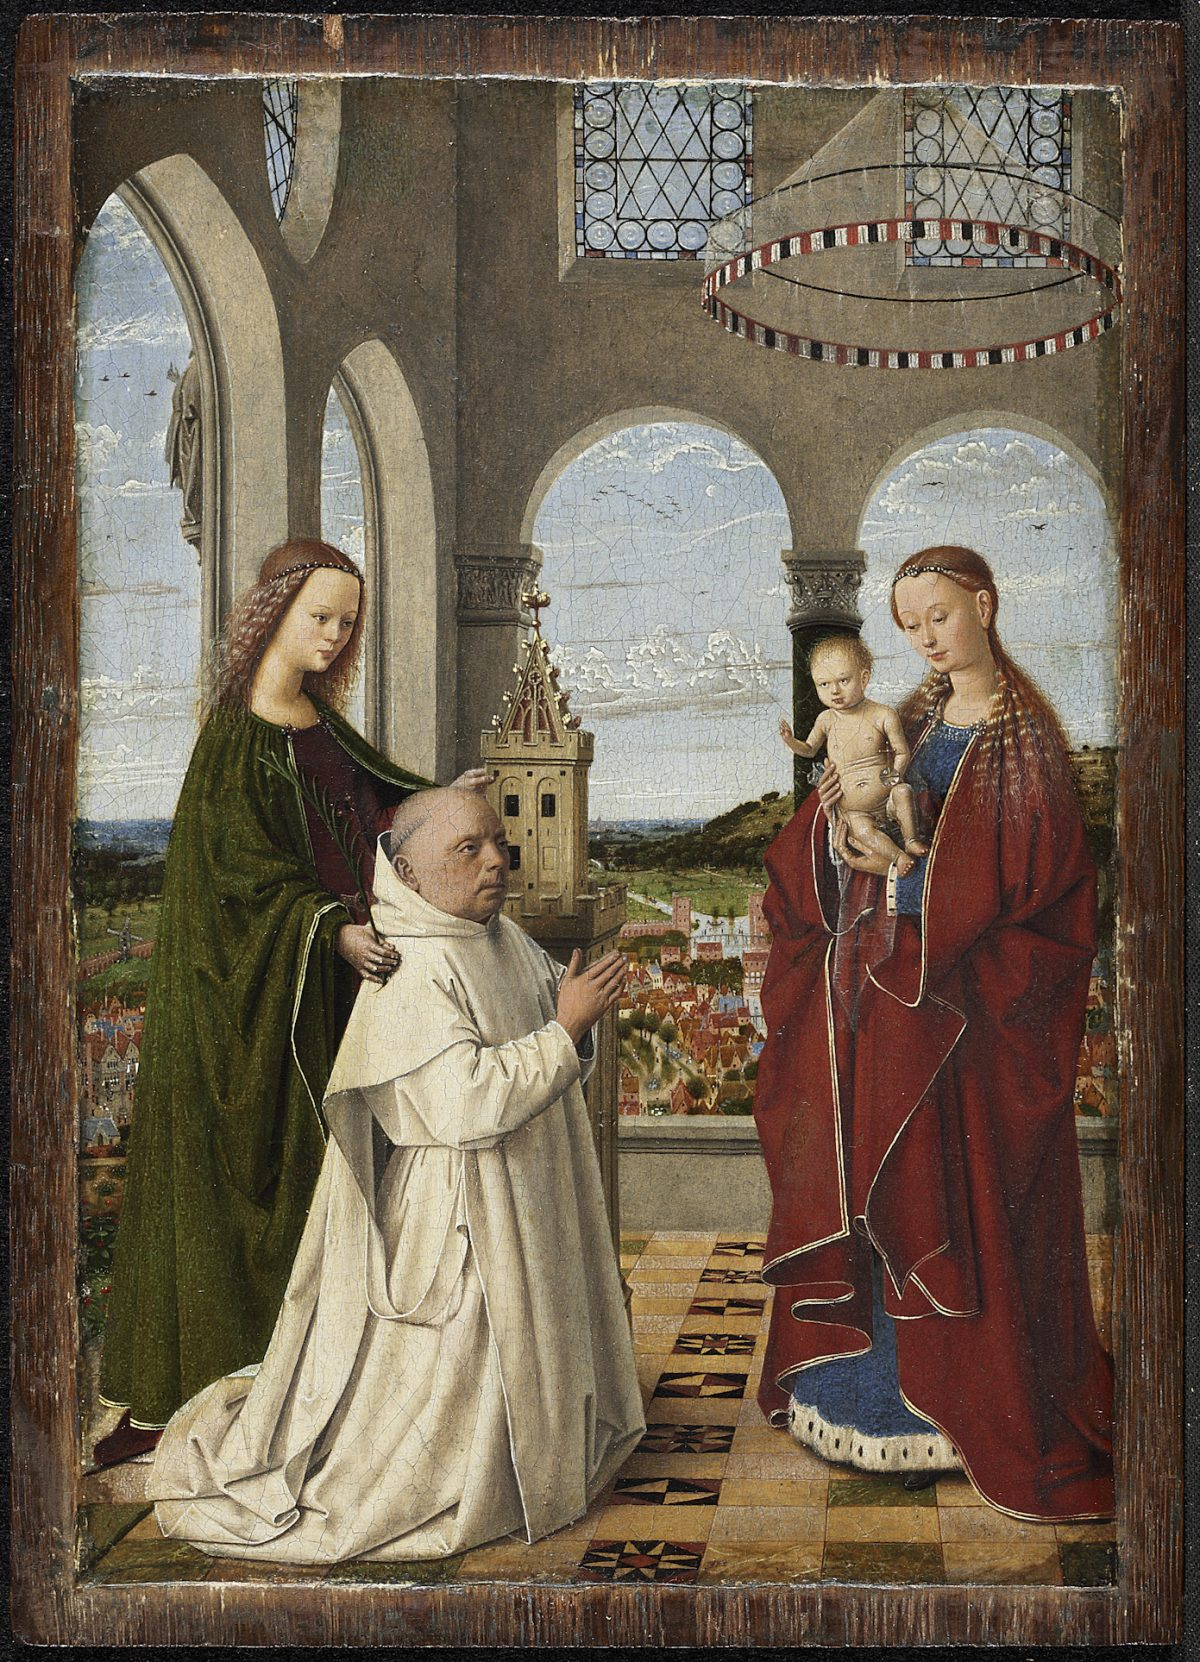 """""""The Virgin and Child with St. Barbara and Jan Vos (known as the Exeter Virgin),"""" circa 1450, by Petrus Christus. Oil on panel, 7 5/8 inches by 5 ½ inches, Staatliche Museen zu Berlin, Gemäldegalerie. (Courtesy of The Frick Collection)"""